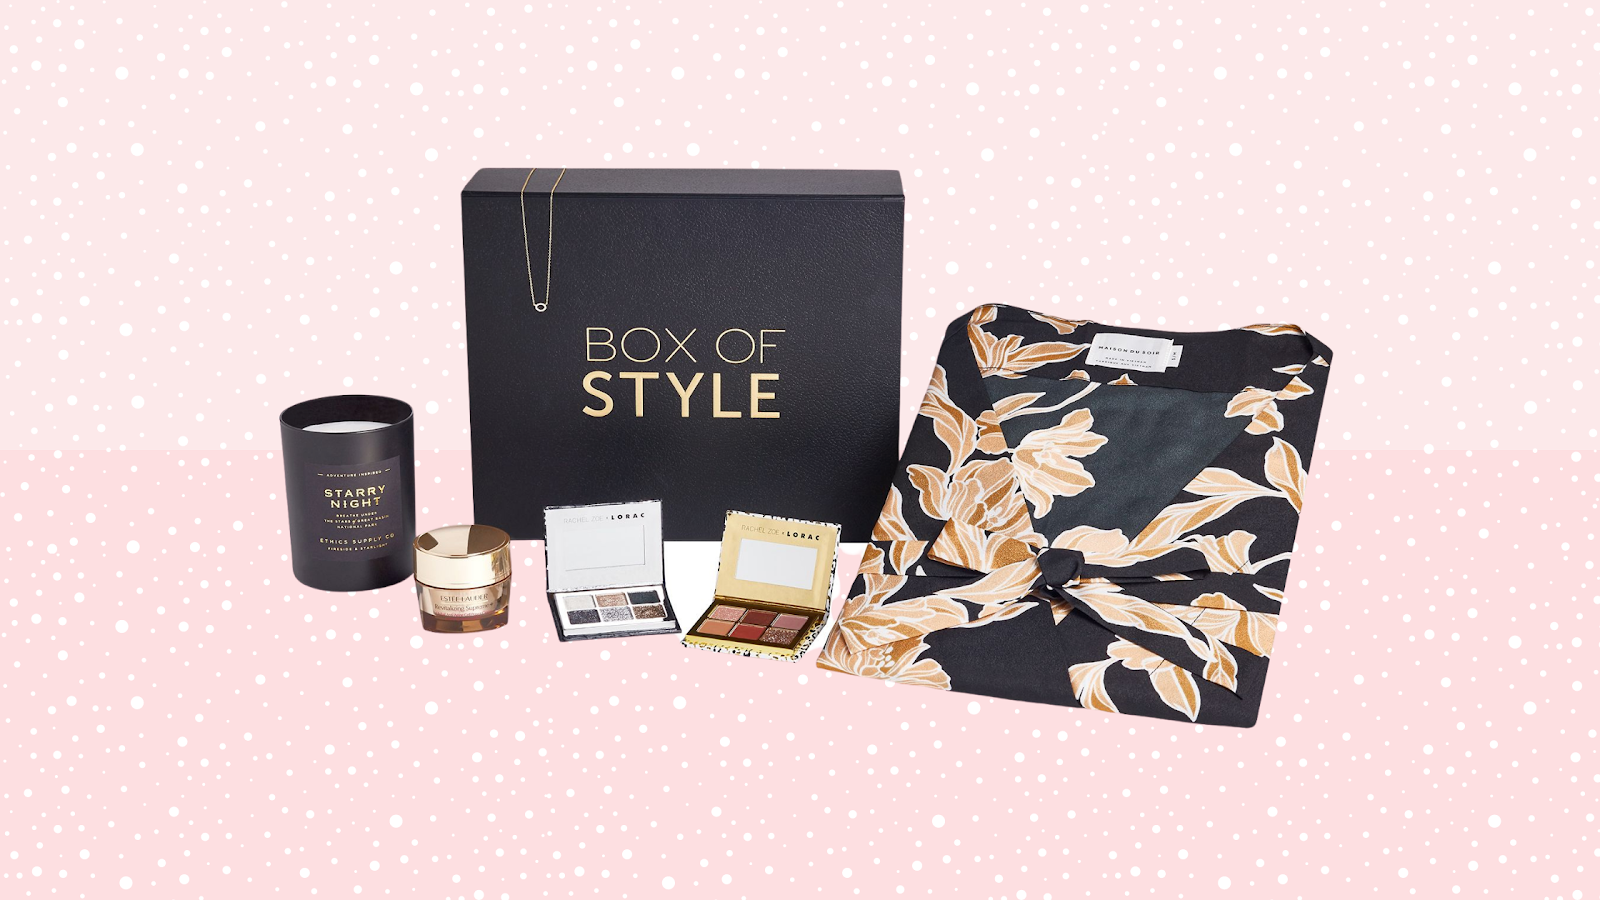 Last-minute holiday gift ideas from Box of Style